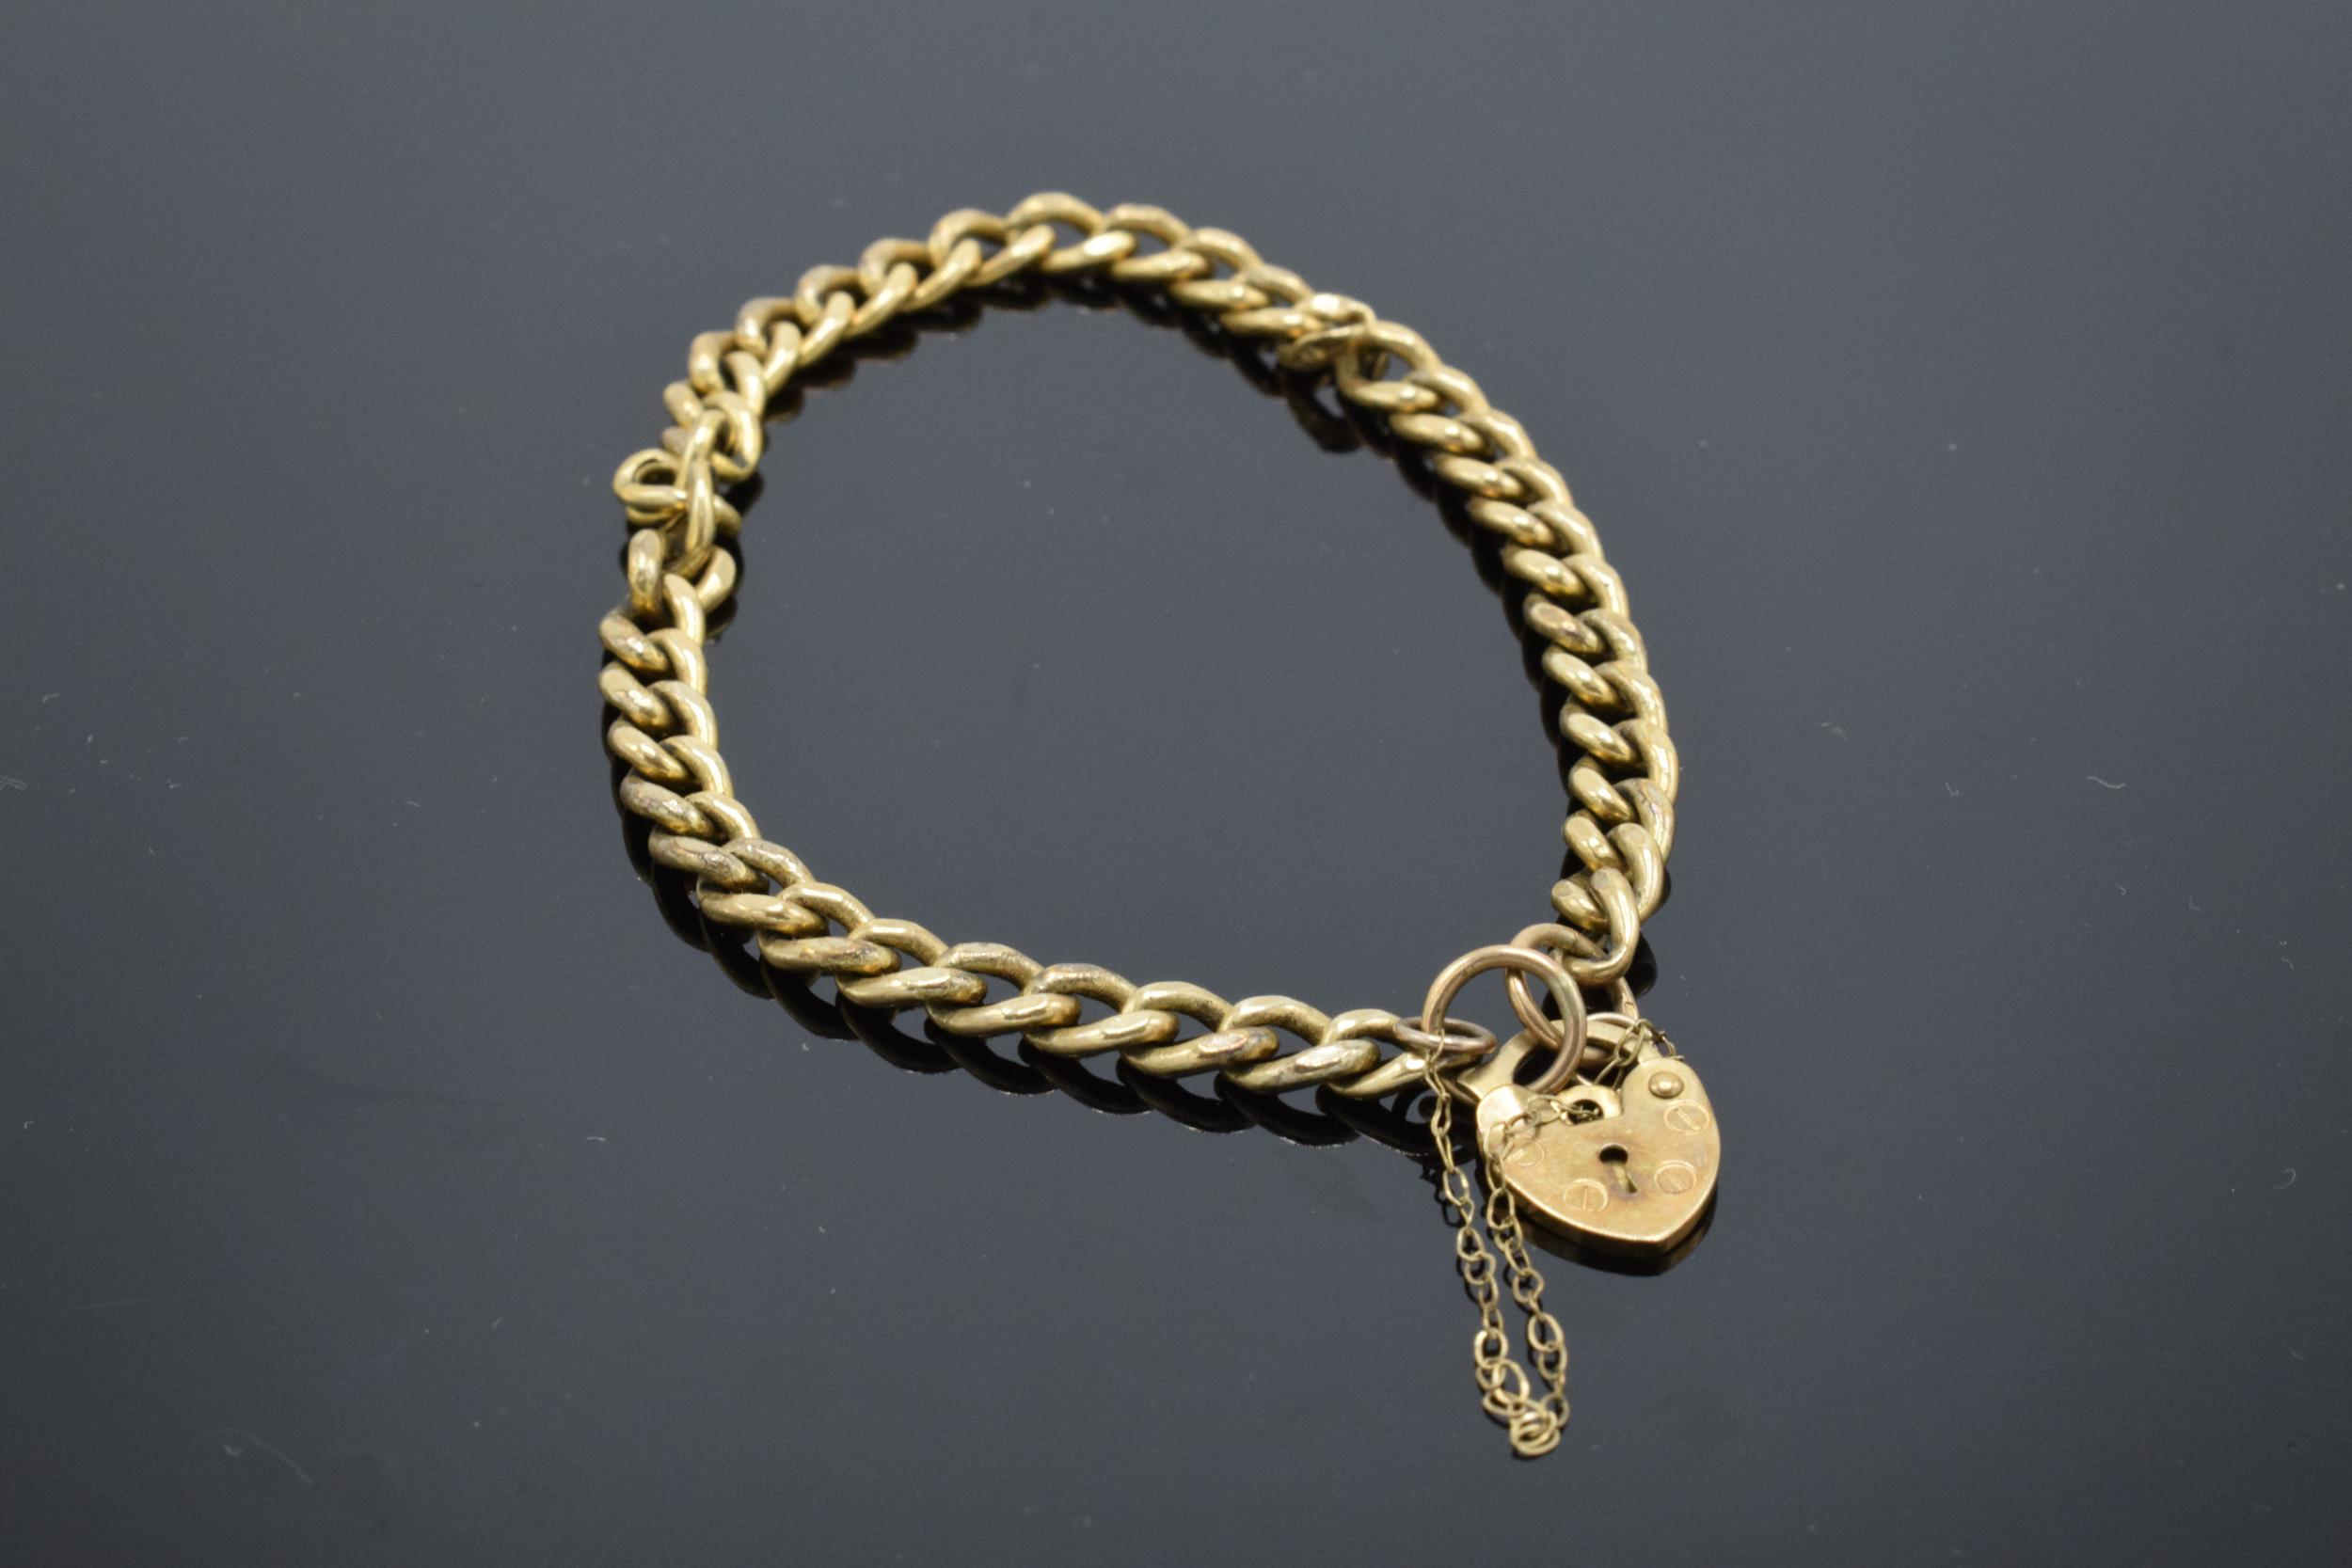 9ct gold hollow link bracelet with some damage 4.7g